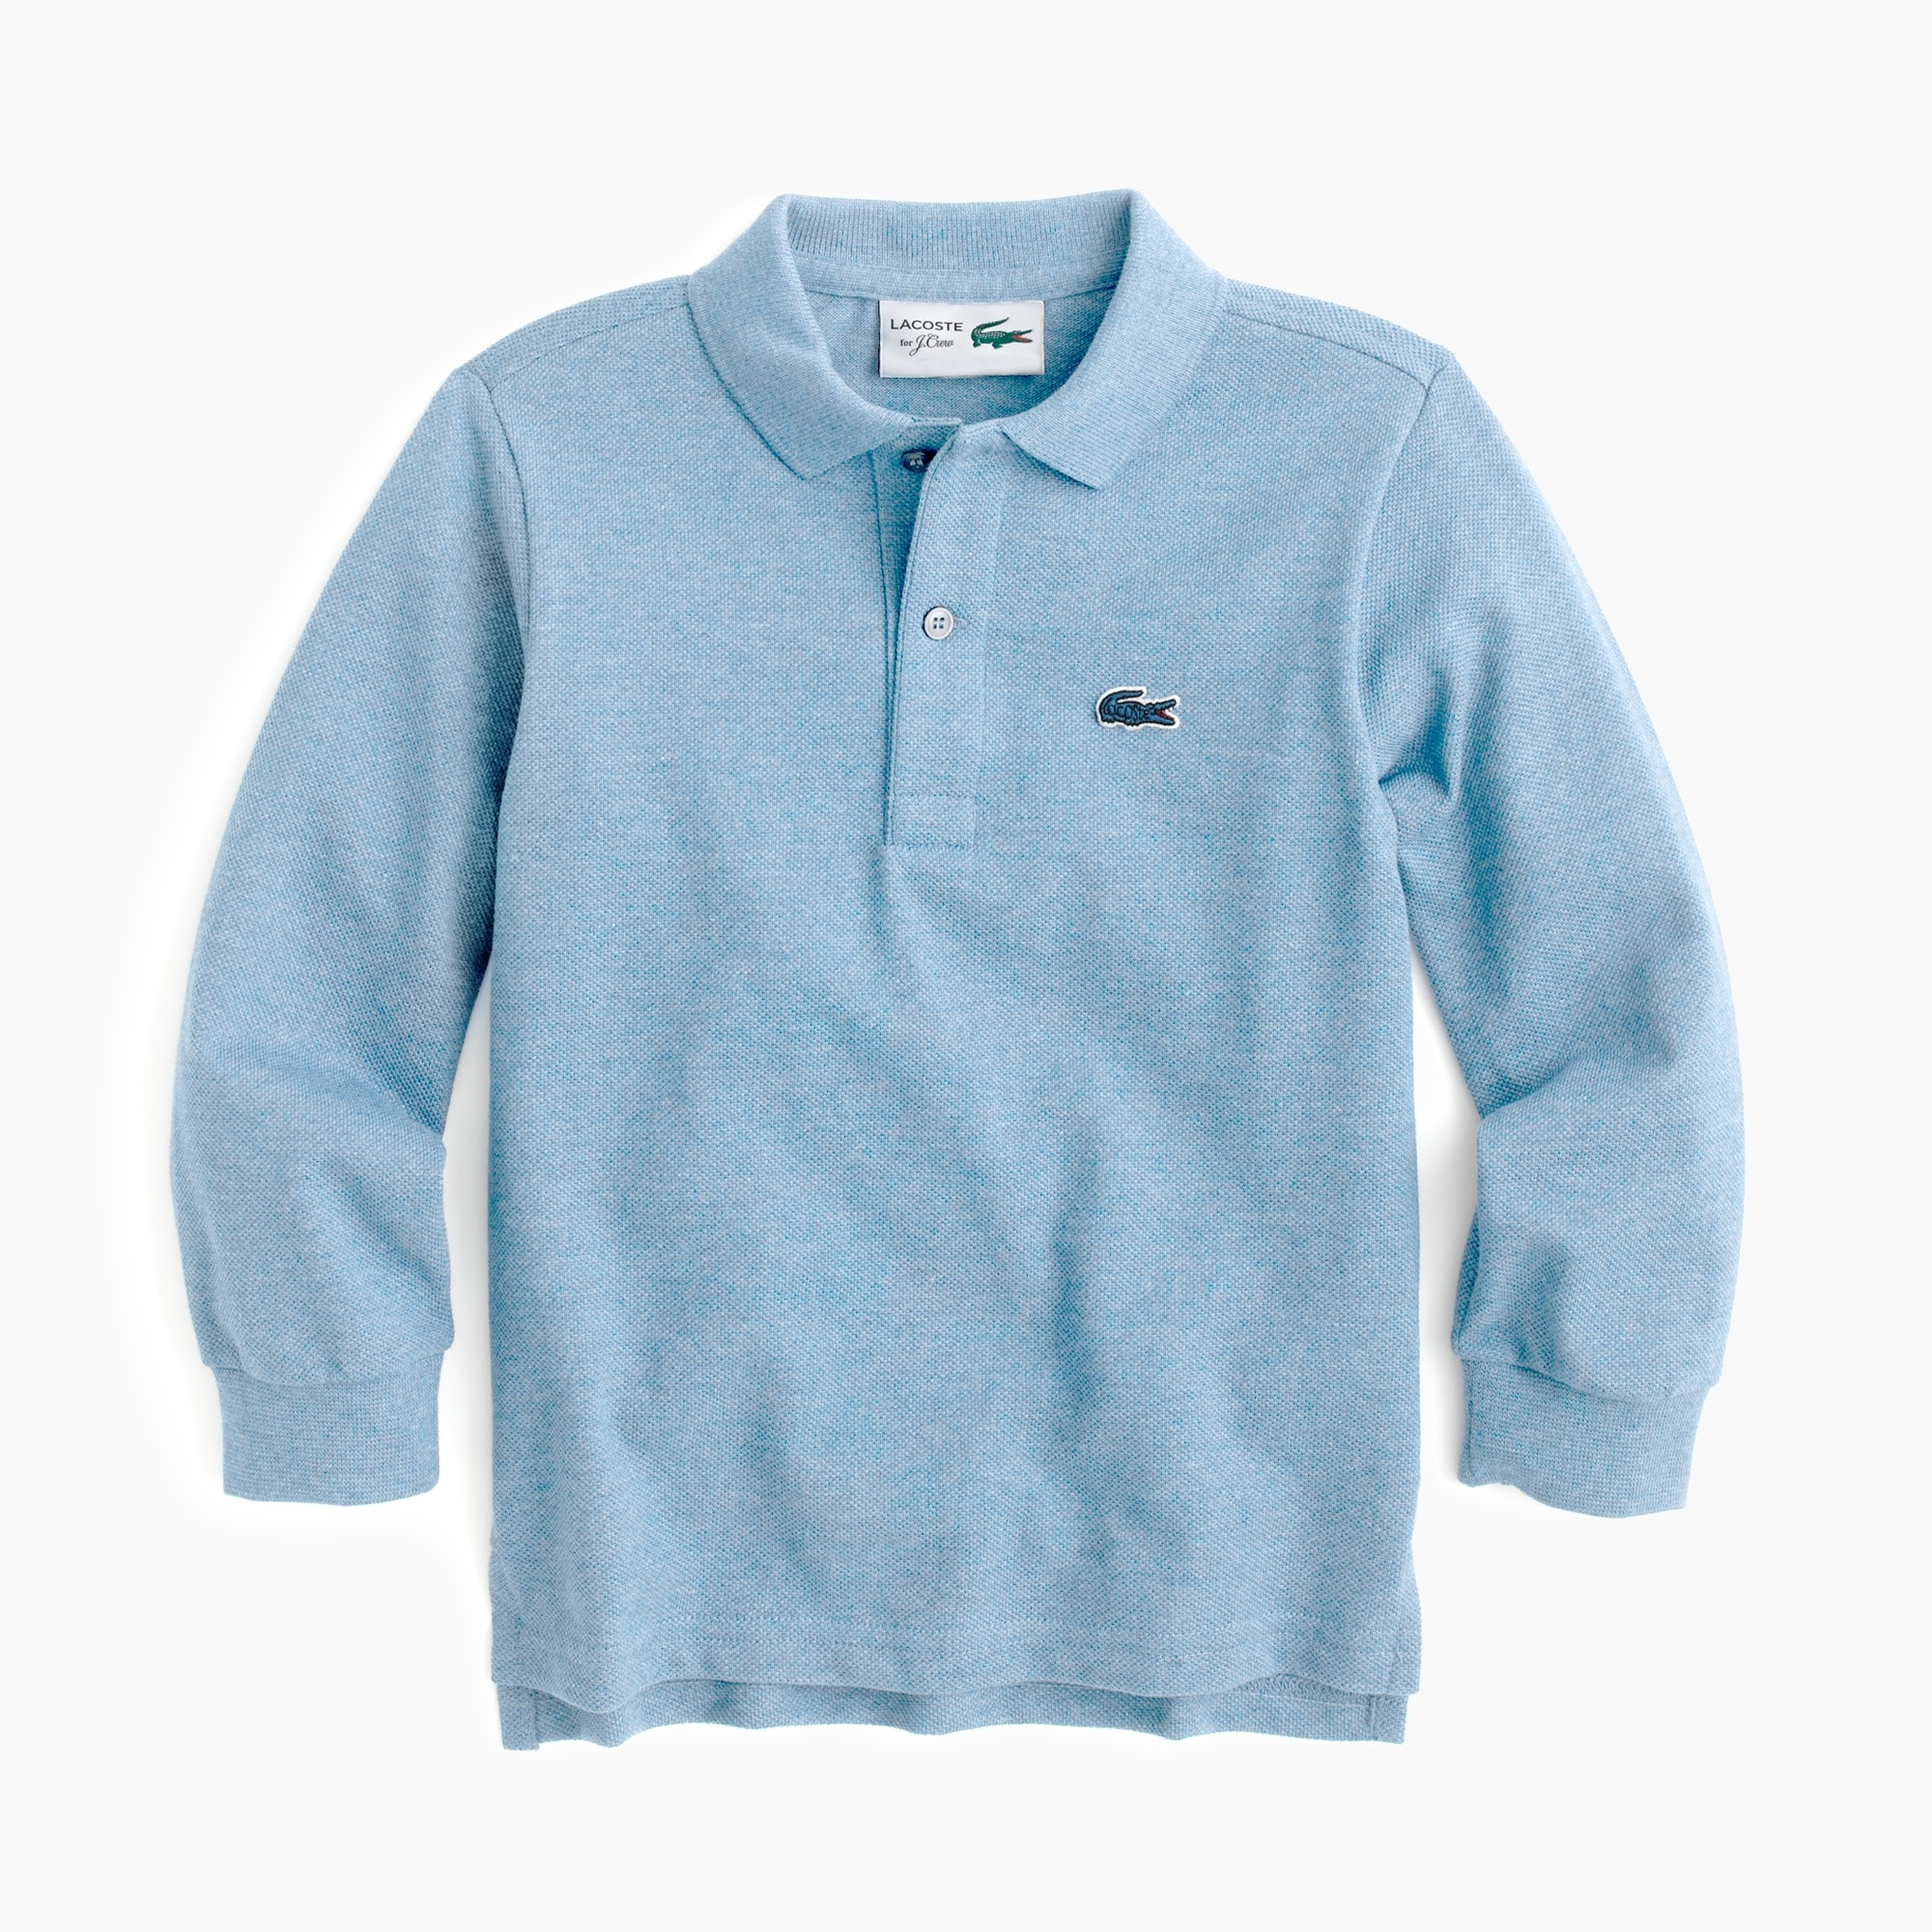 Kids' Lacoste for J.Crew long-sleeve polo shirt